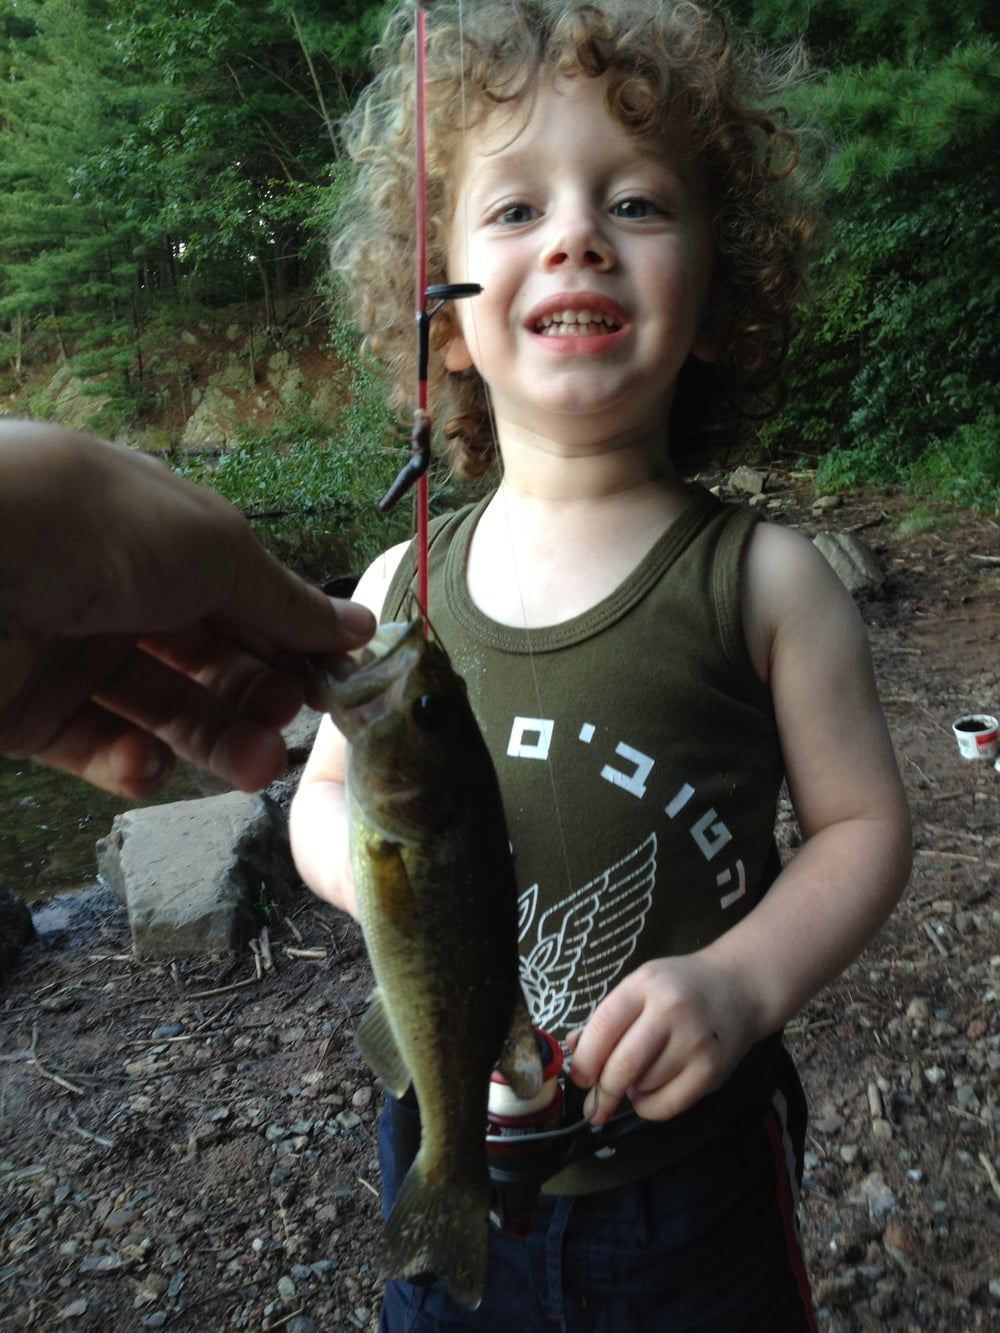 Here is my nephew Mikael, who was four at the time, proudly displaying his first largemouth bass. This was one of many bass that he caught that day.